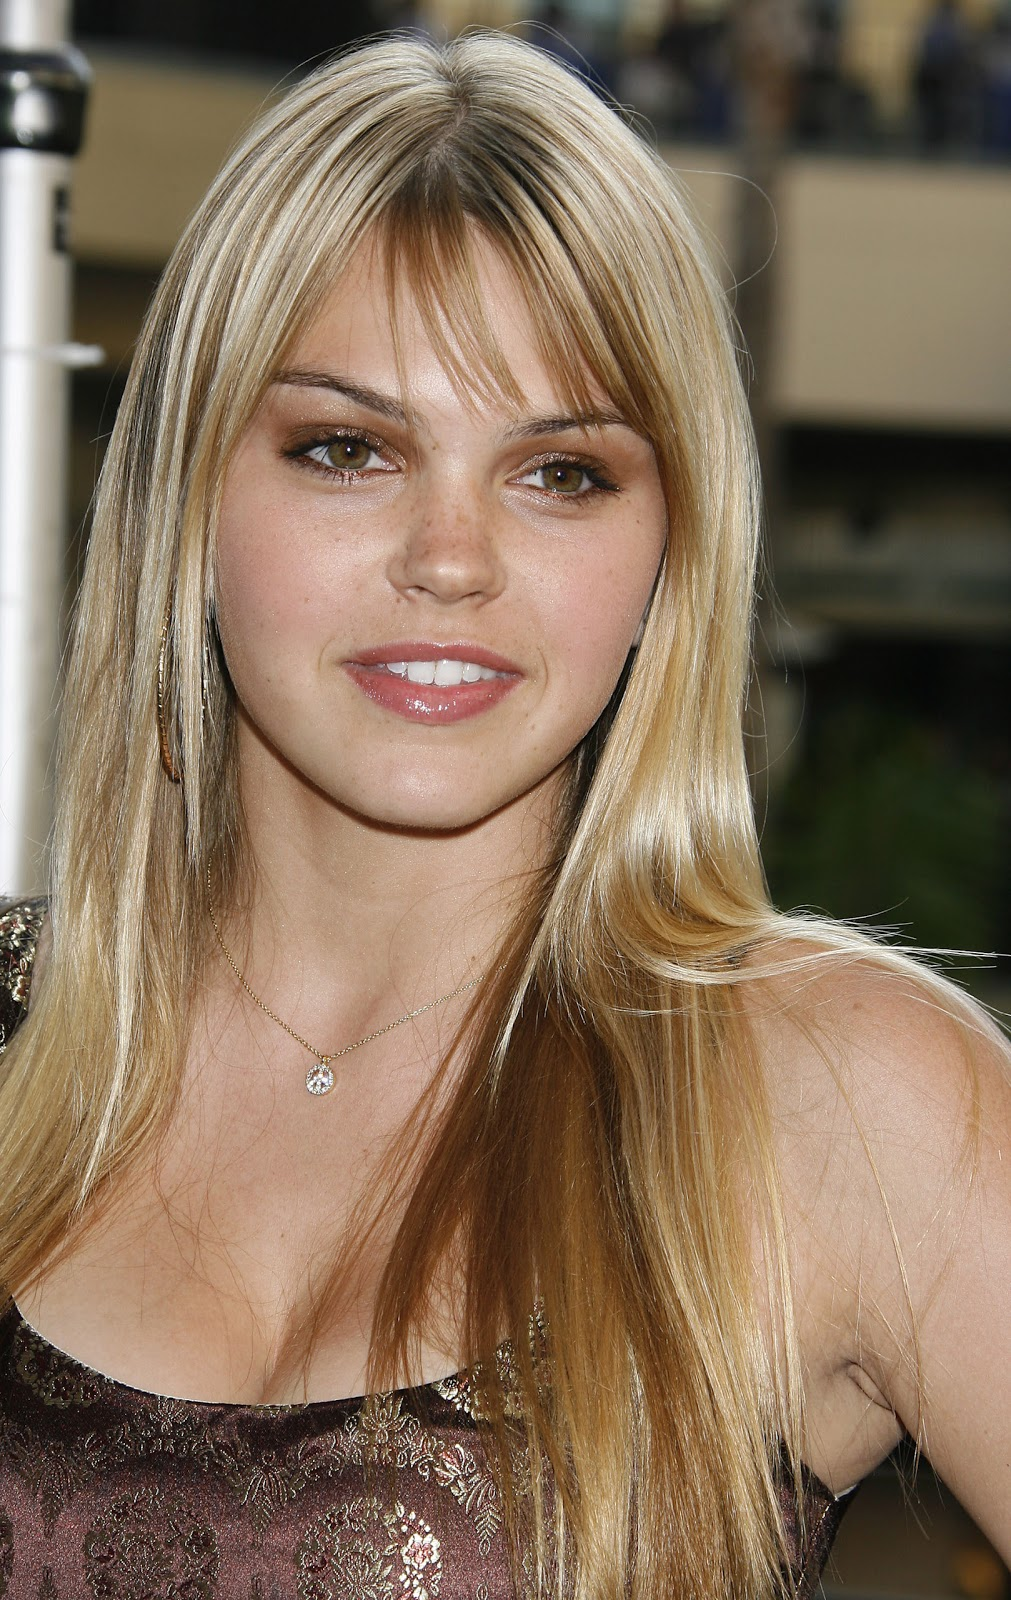 picture aimee teegarden - photo #6